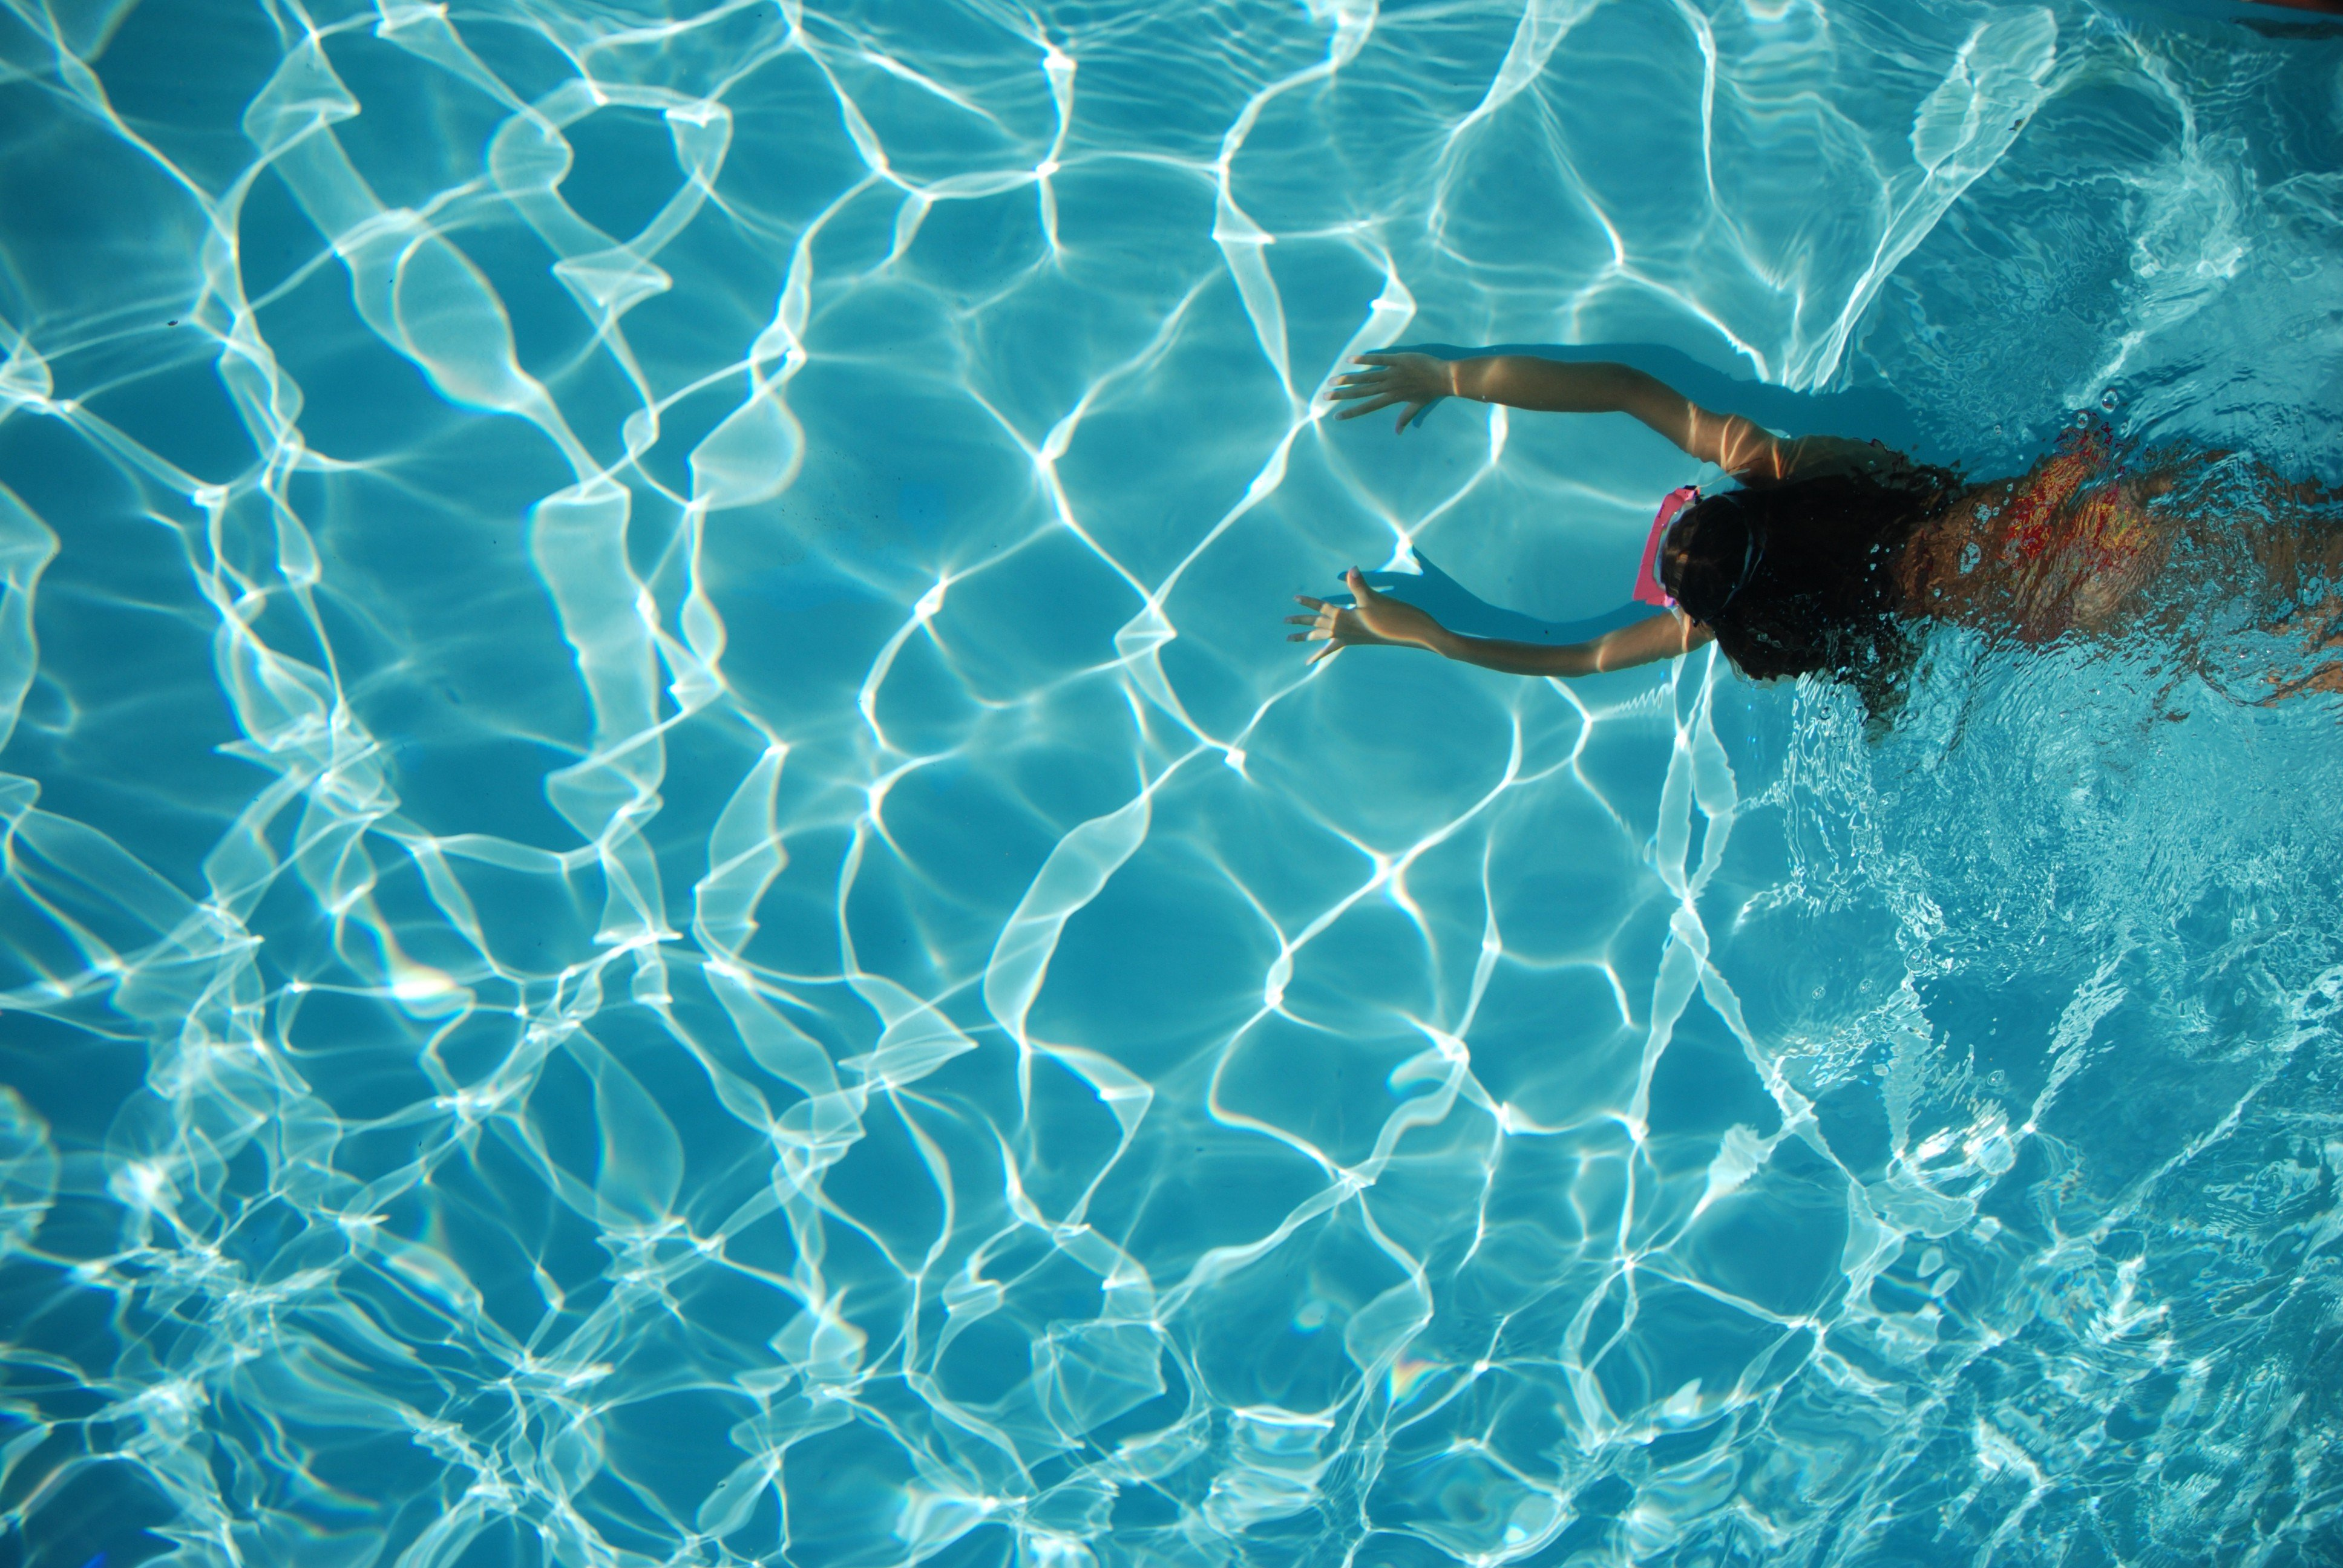 Swimming Pool Wallpapers HD  Android Apps on Google Play